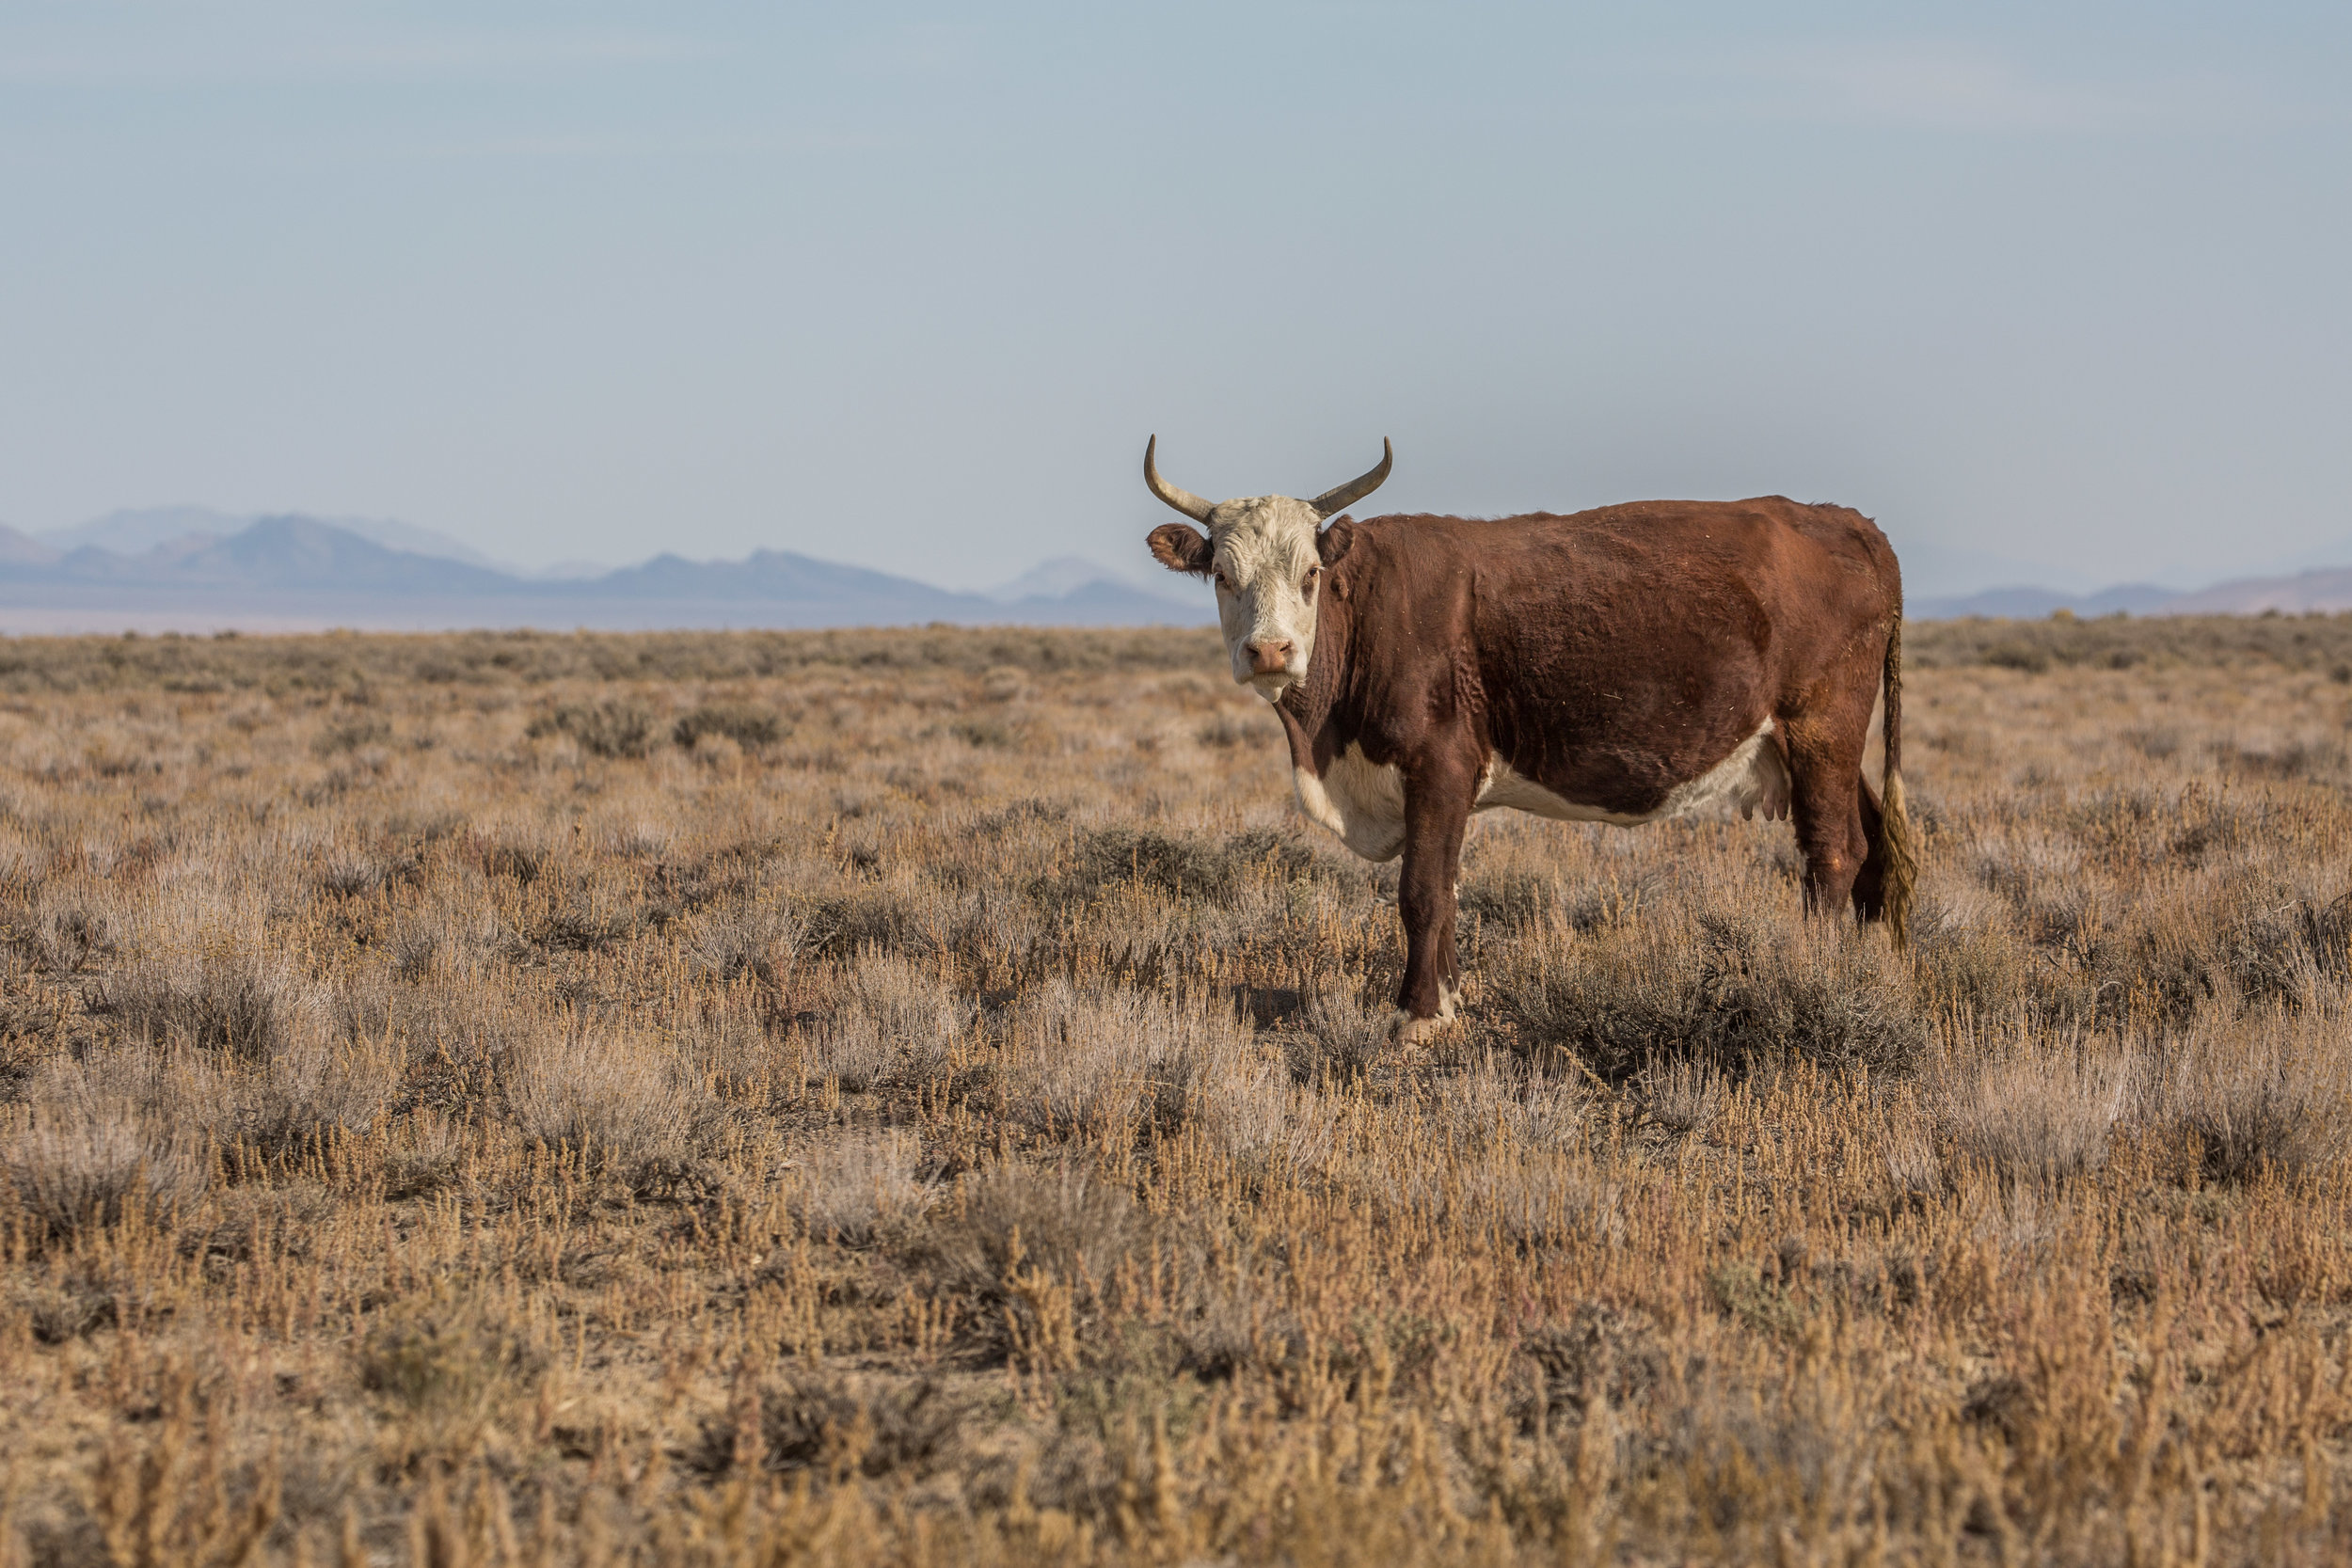 - Grazing cattle is allowed within the boundaries of the national monument and existing grazing rights were respected, as well as private property and proper access to it. Hunting and OHV activities are also allowed in Basin and Range in designated areas.